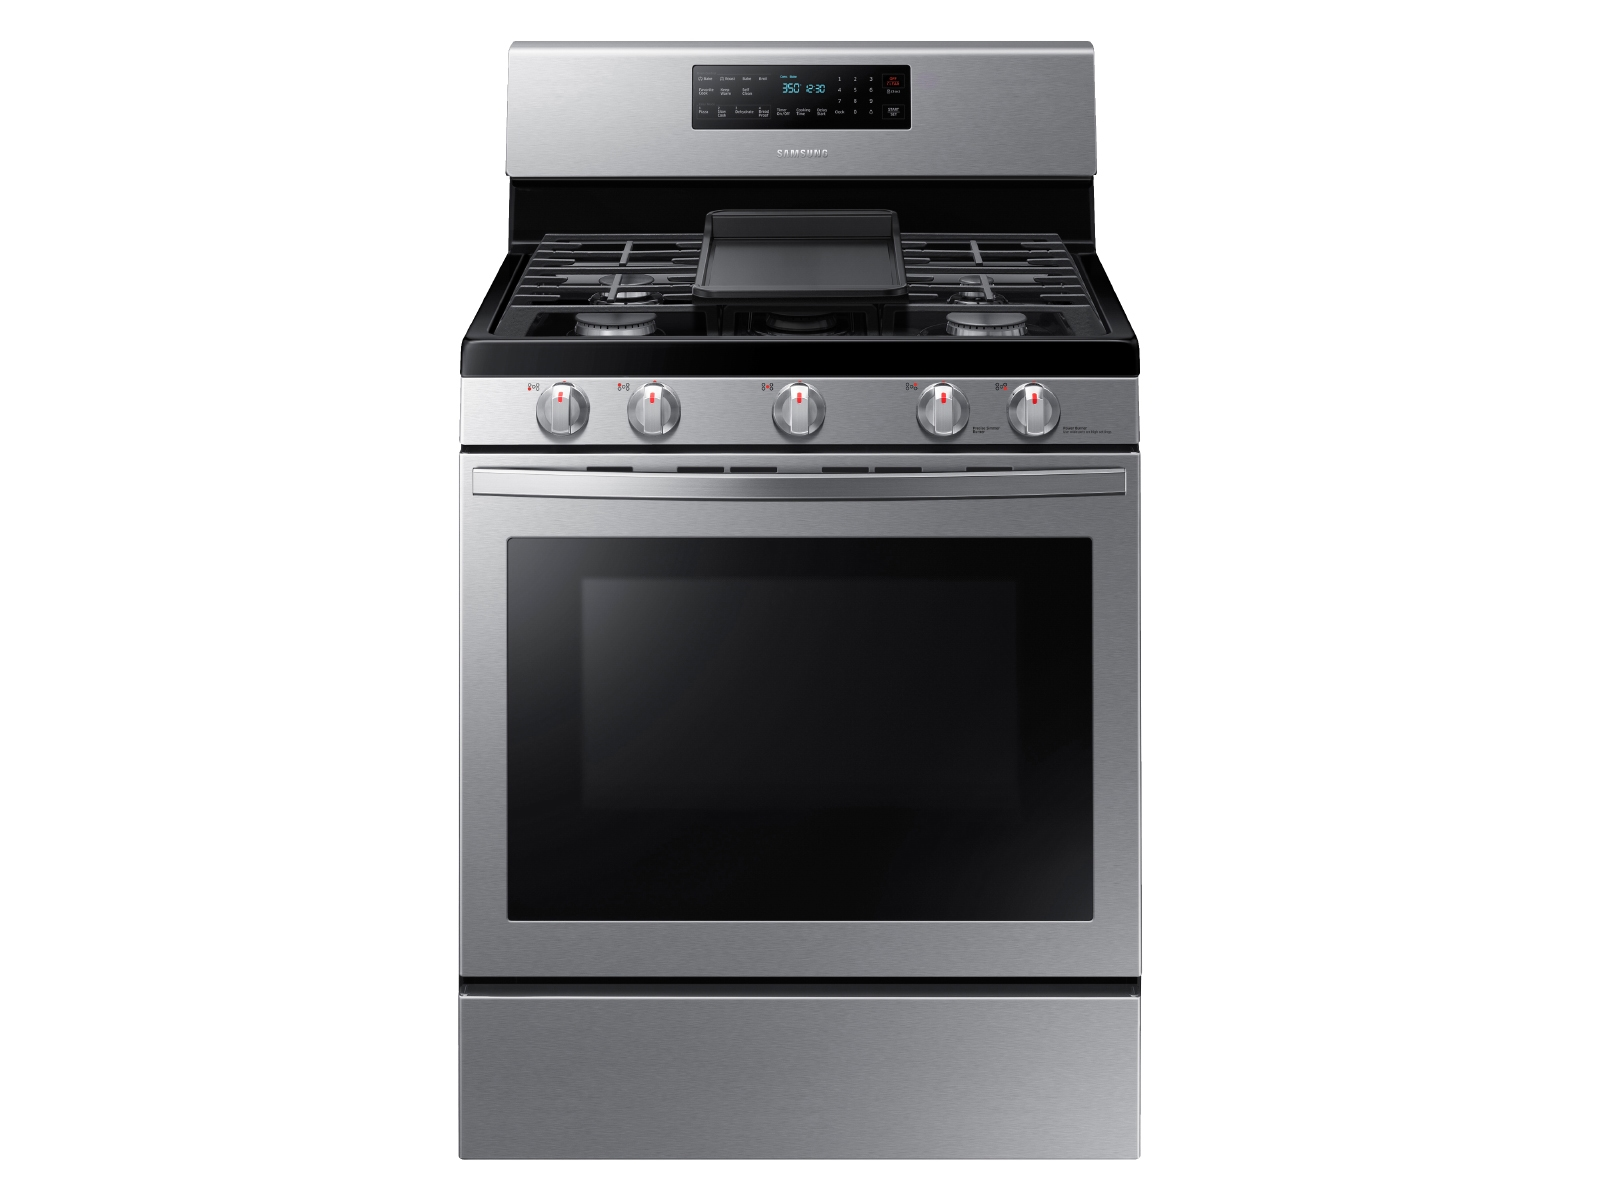 Large Capacity 4-door Refrigerator + Gas Range with Convection + StormWash™ Dishwasher + Microwave in Stainless Steel